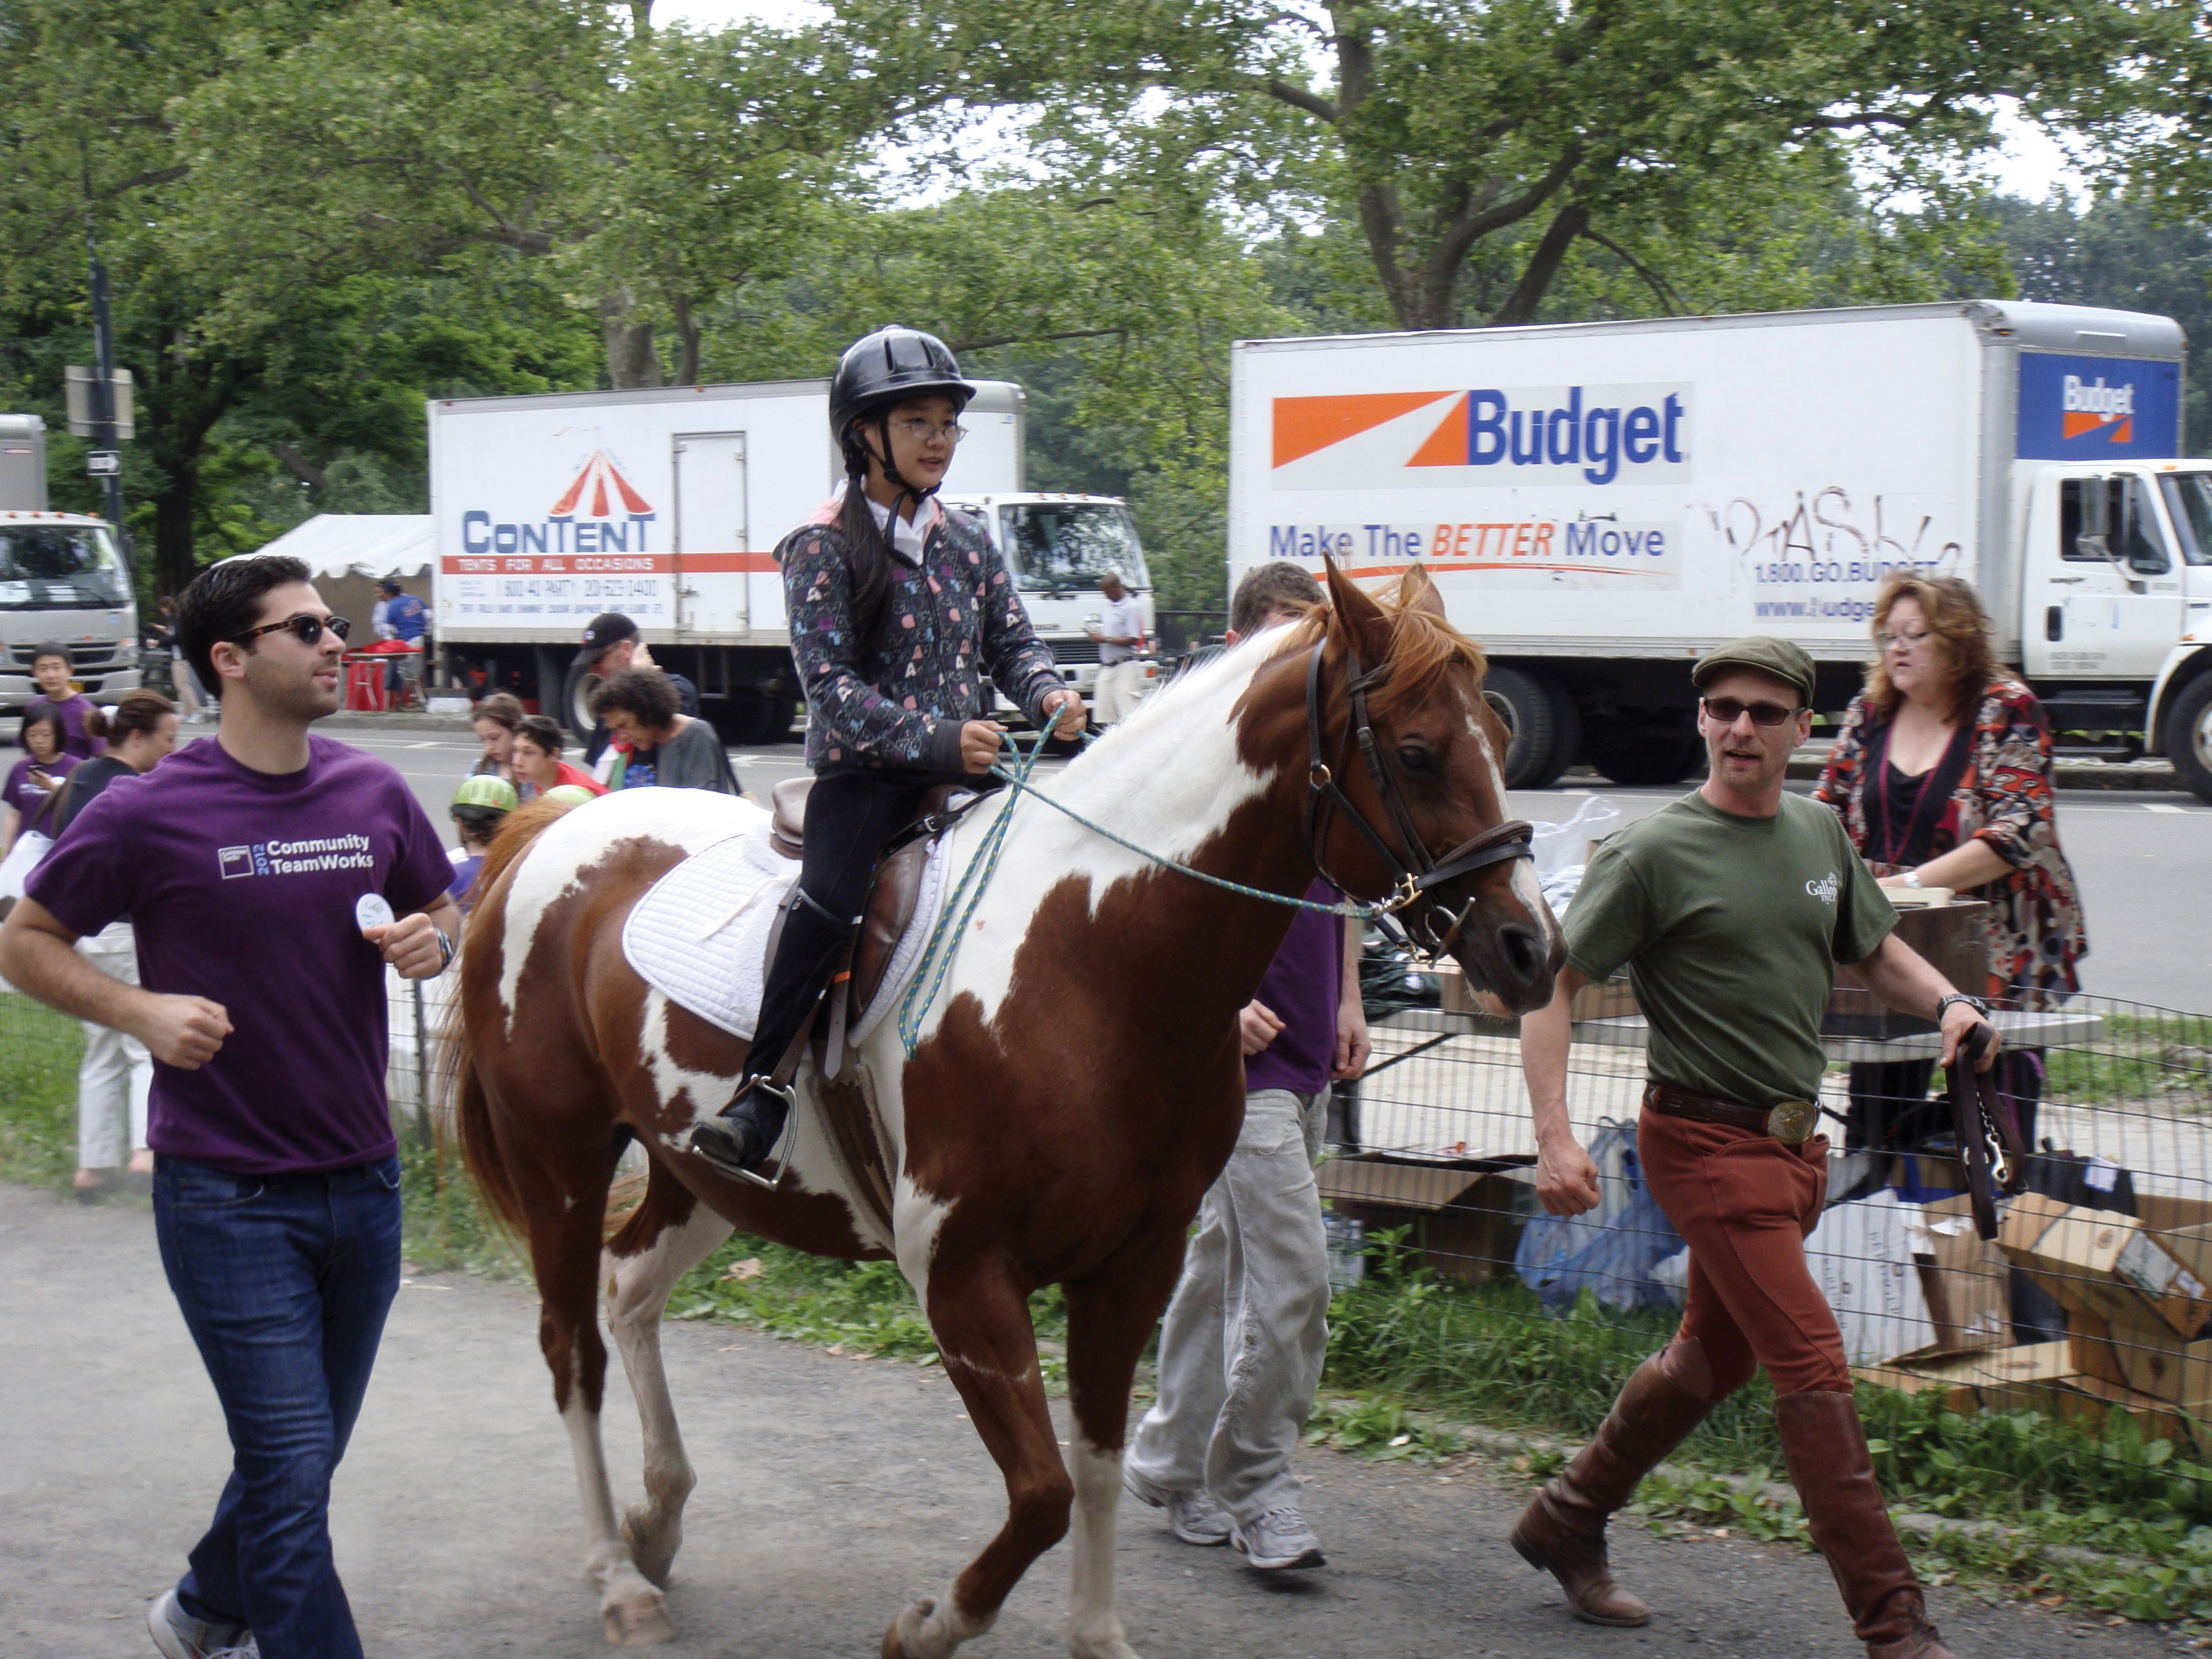 GallopNYC horse show in central park